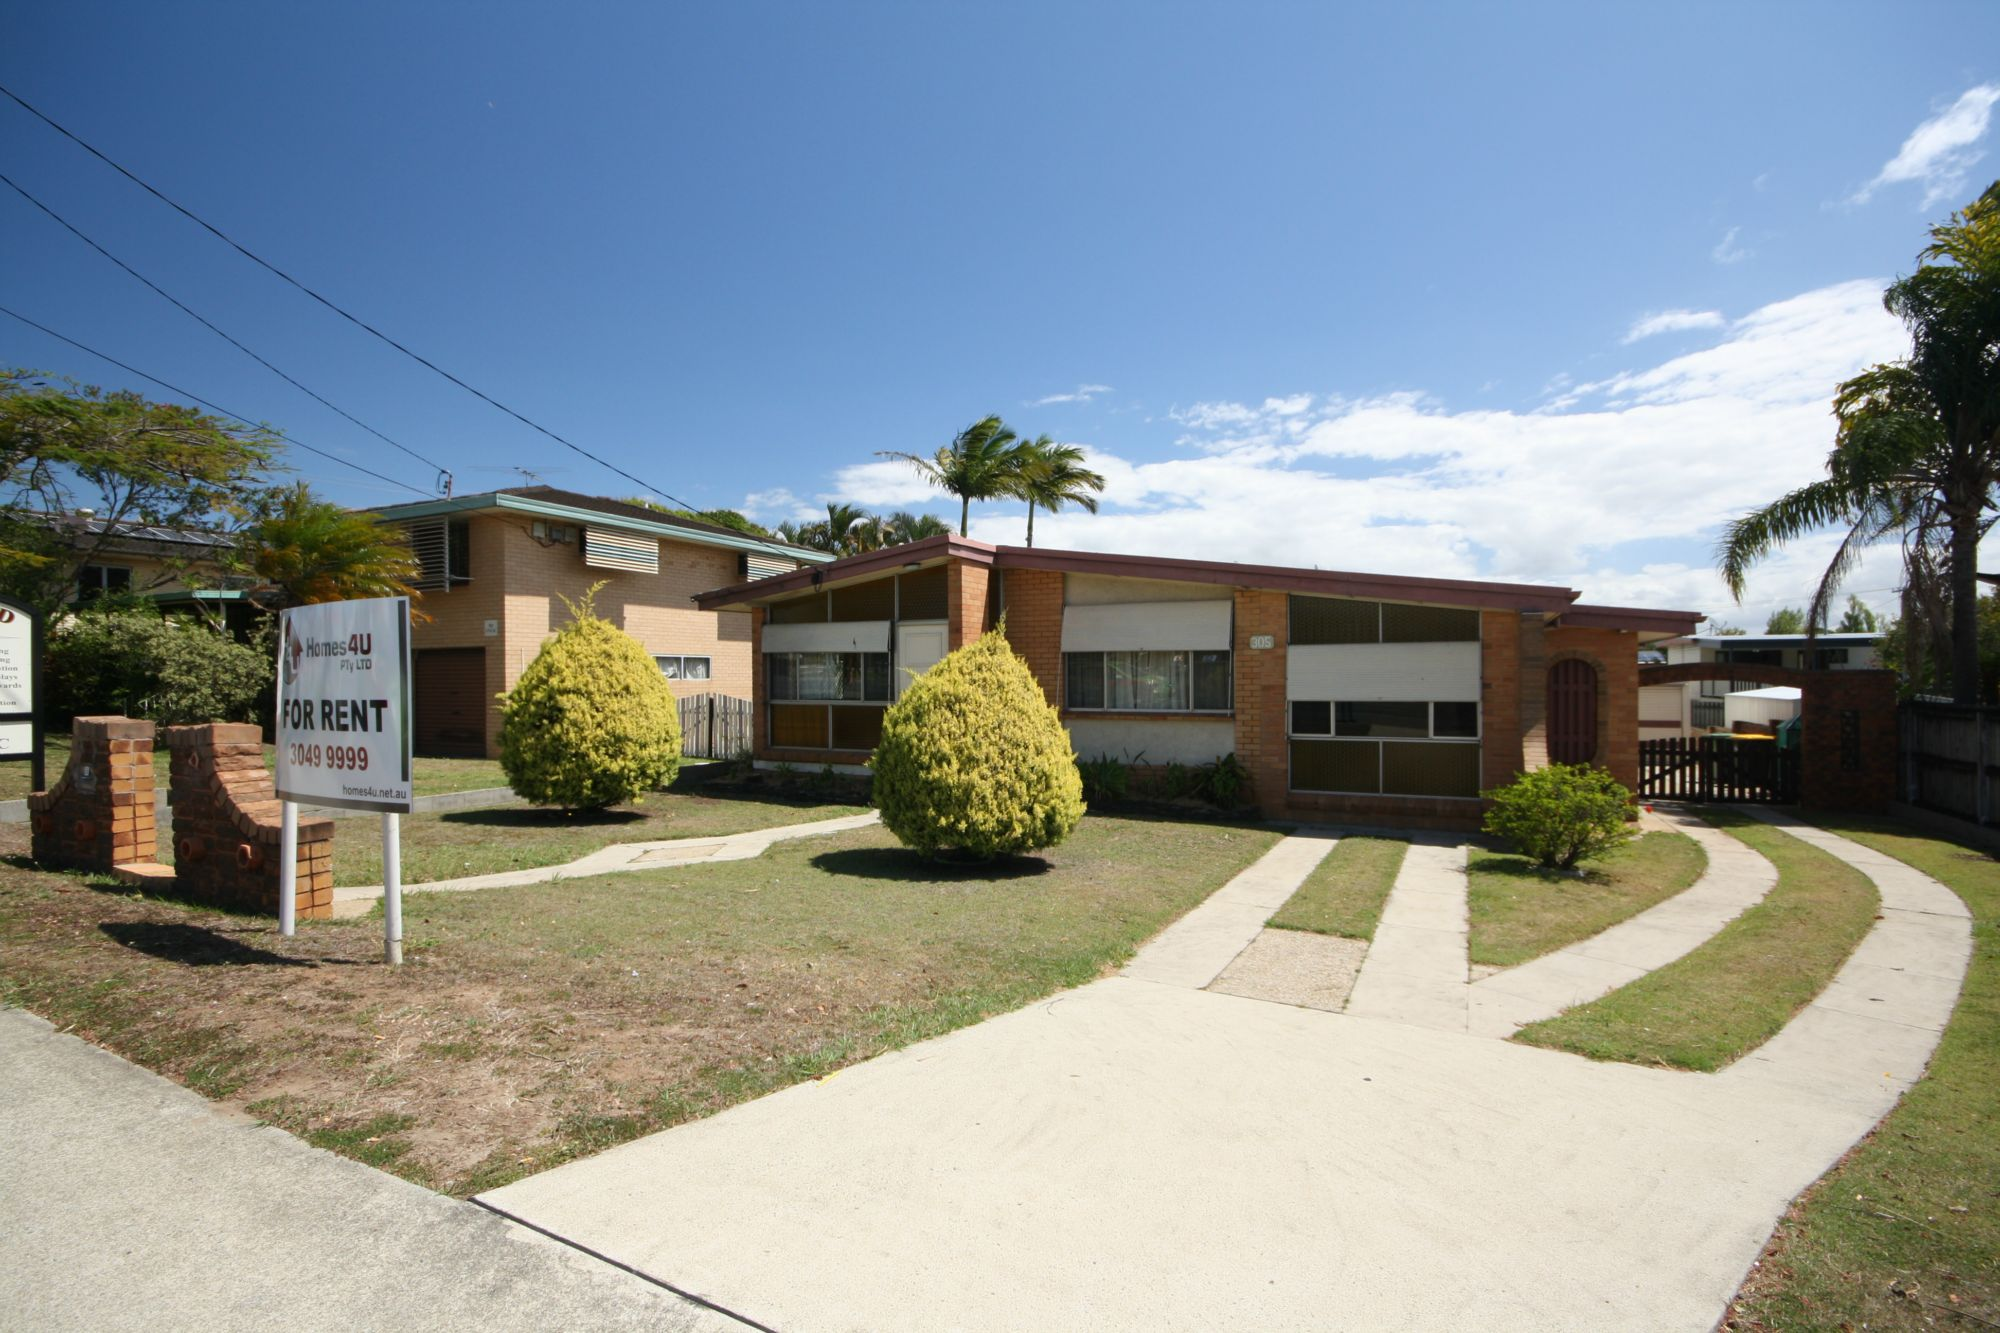 305 Anzac Avenue St Kippa-ring, 4021 3 Bedroom House for